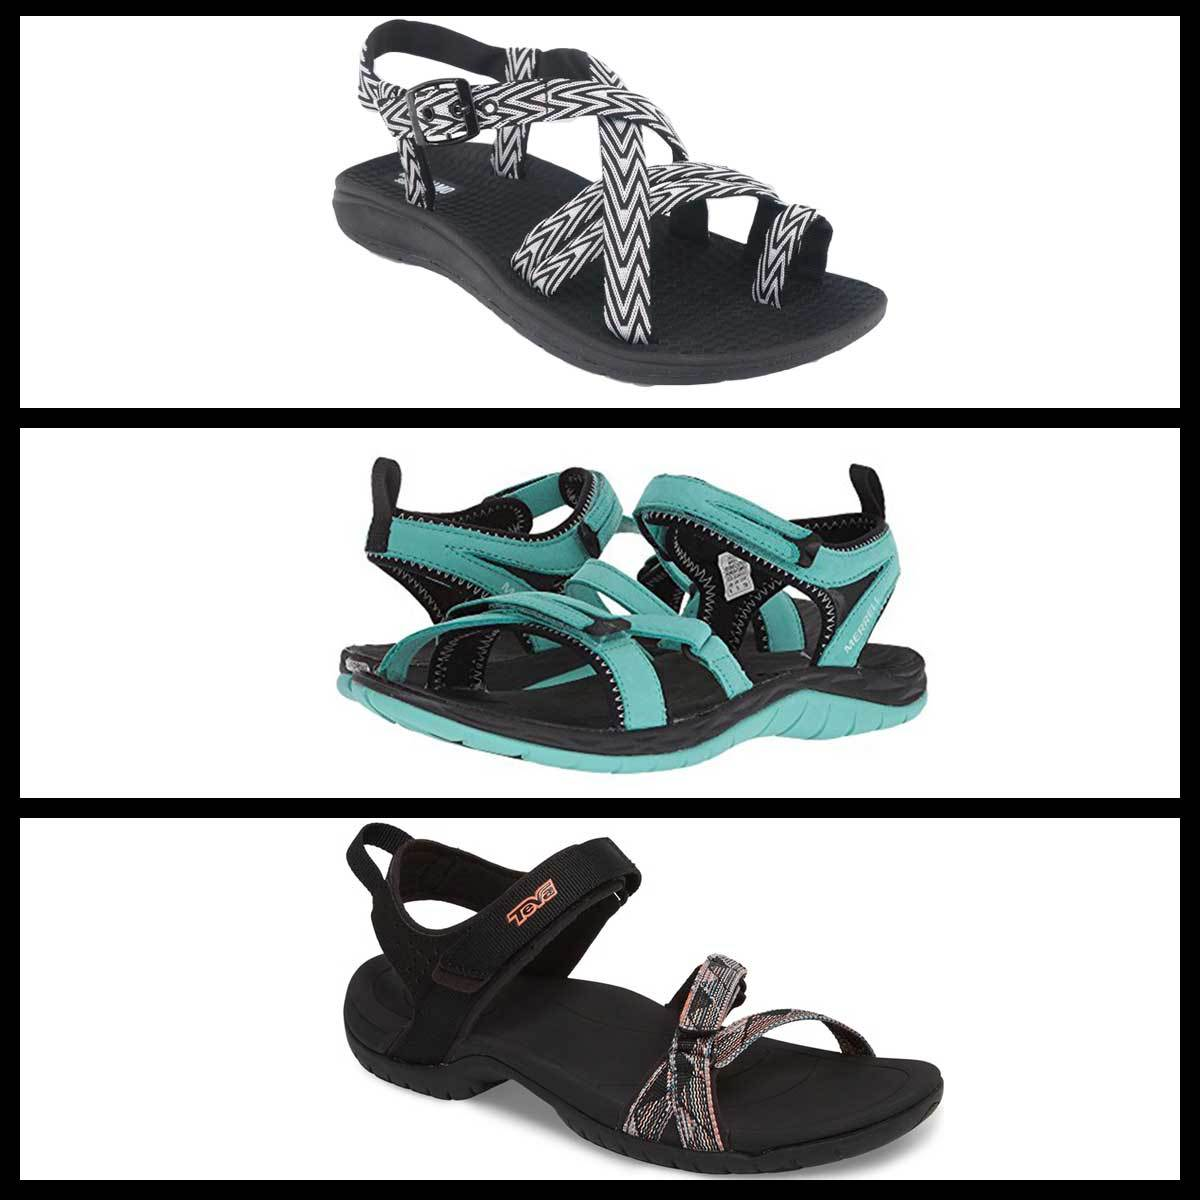 Grid of three hiking sandals including a white and black pair, turquoise pair, and black and peach pair photo